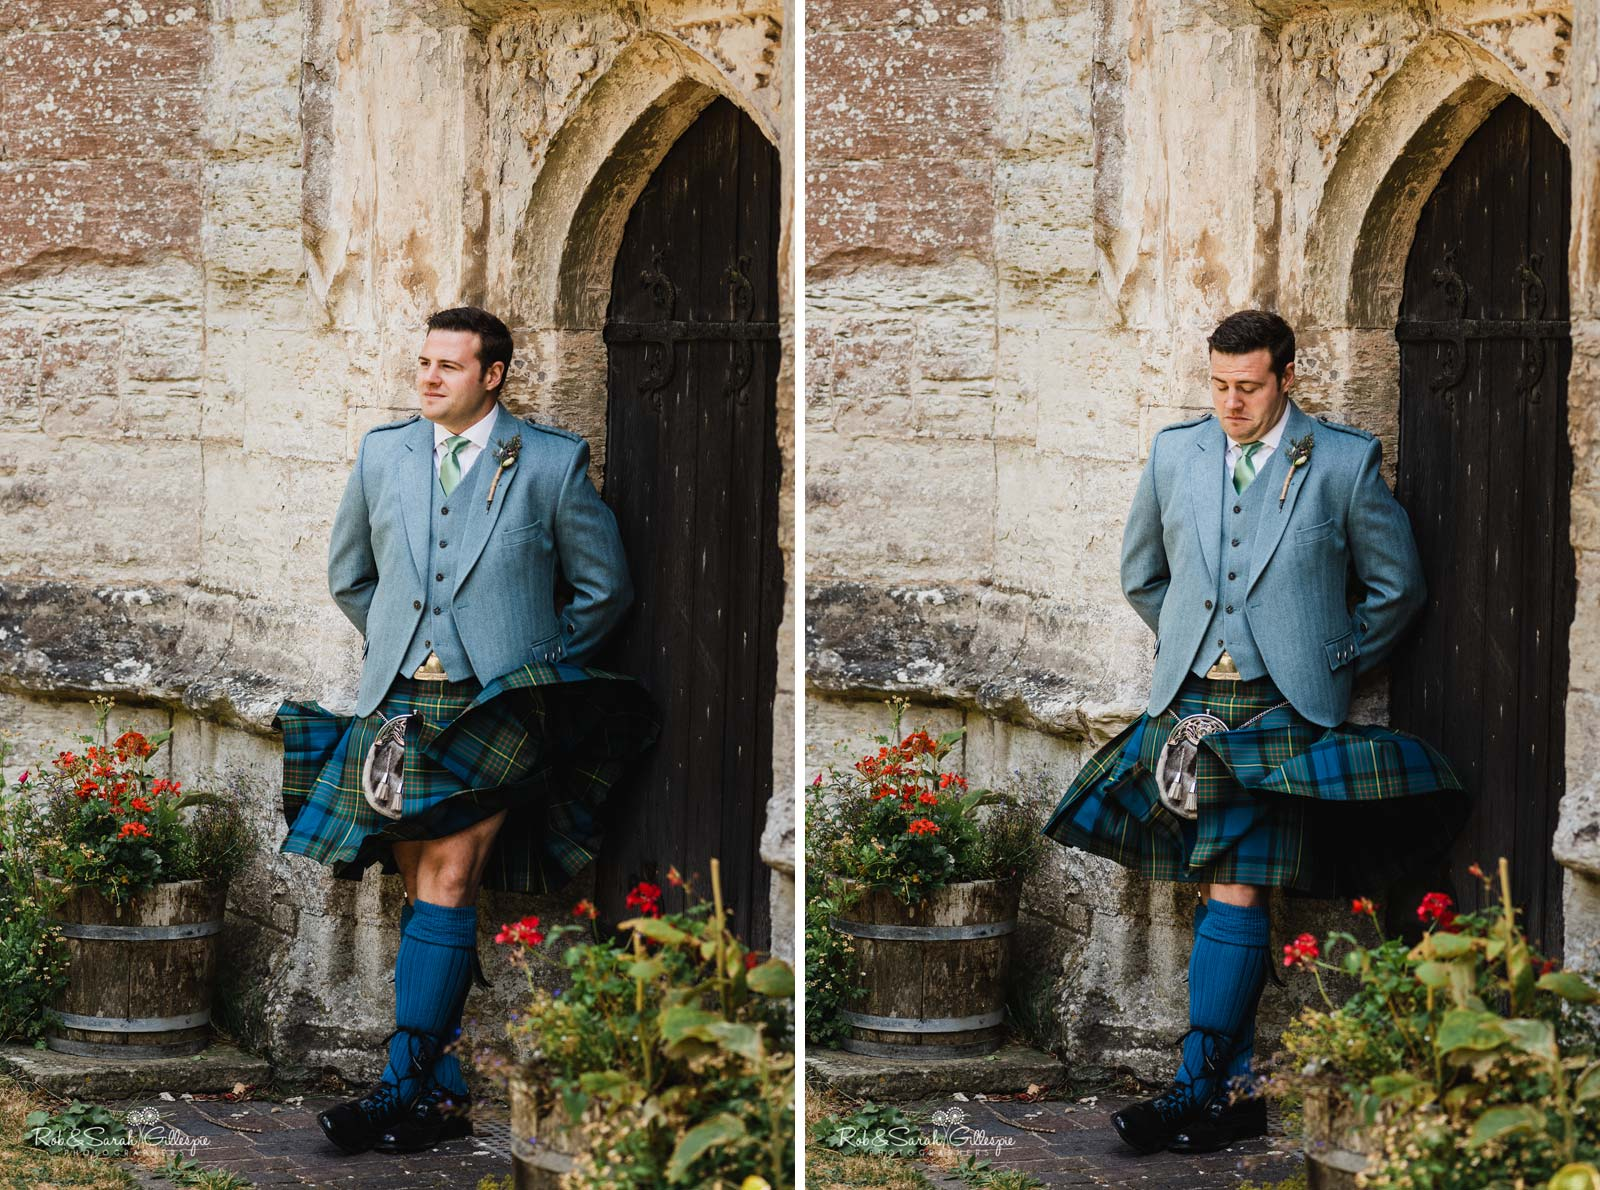 Groom poses for photo as kilt flies up at St Giles church Packwood